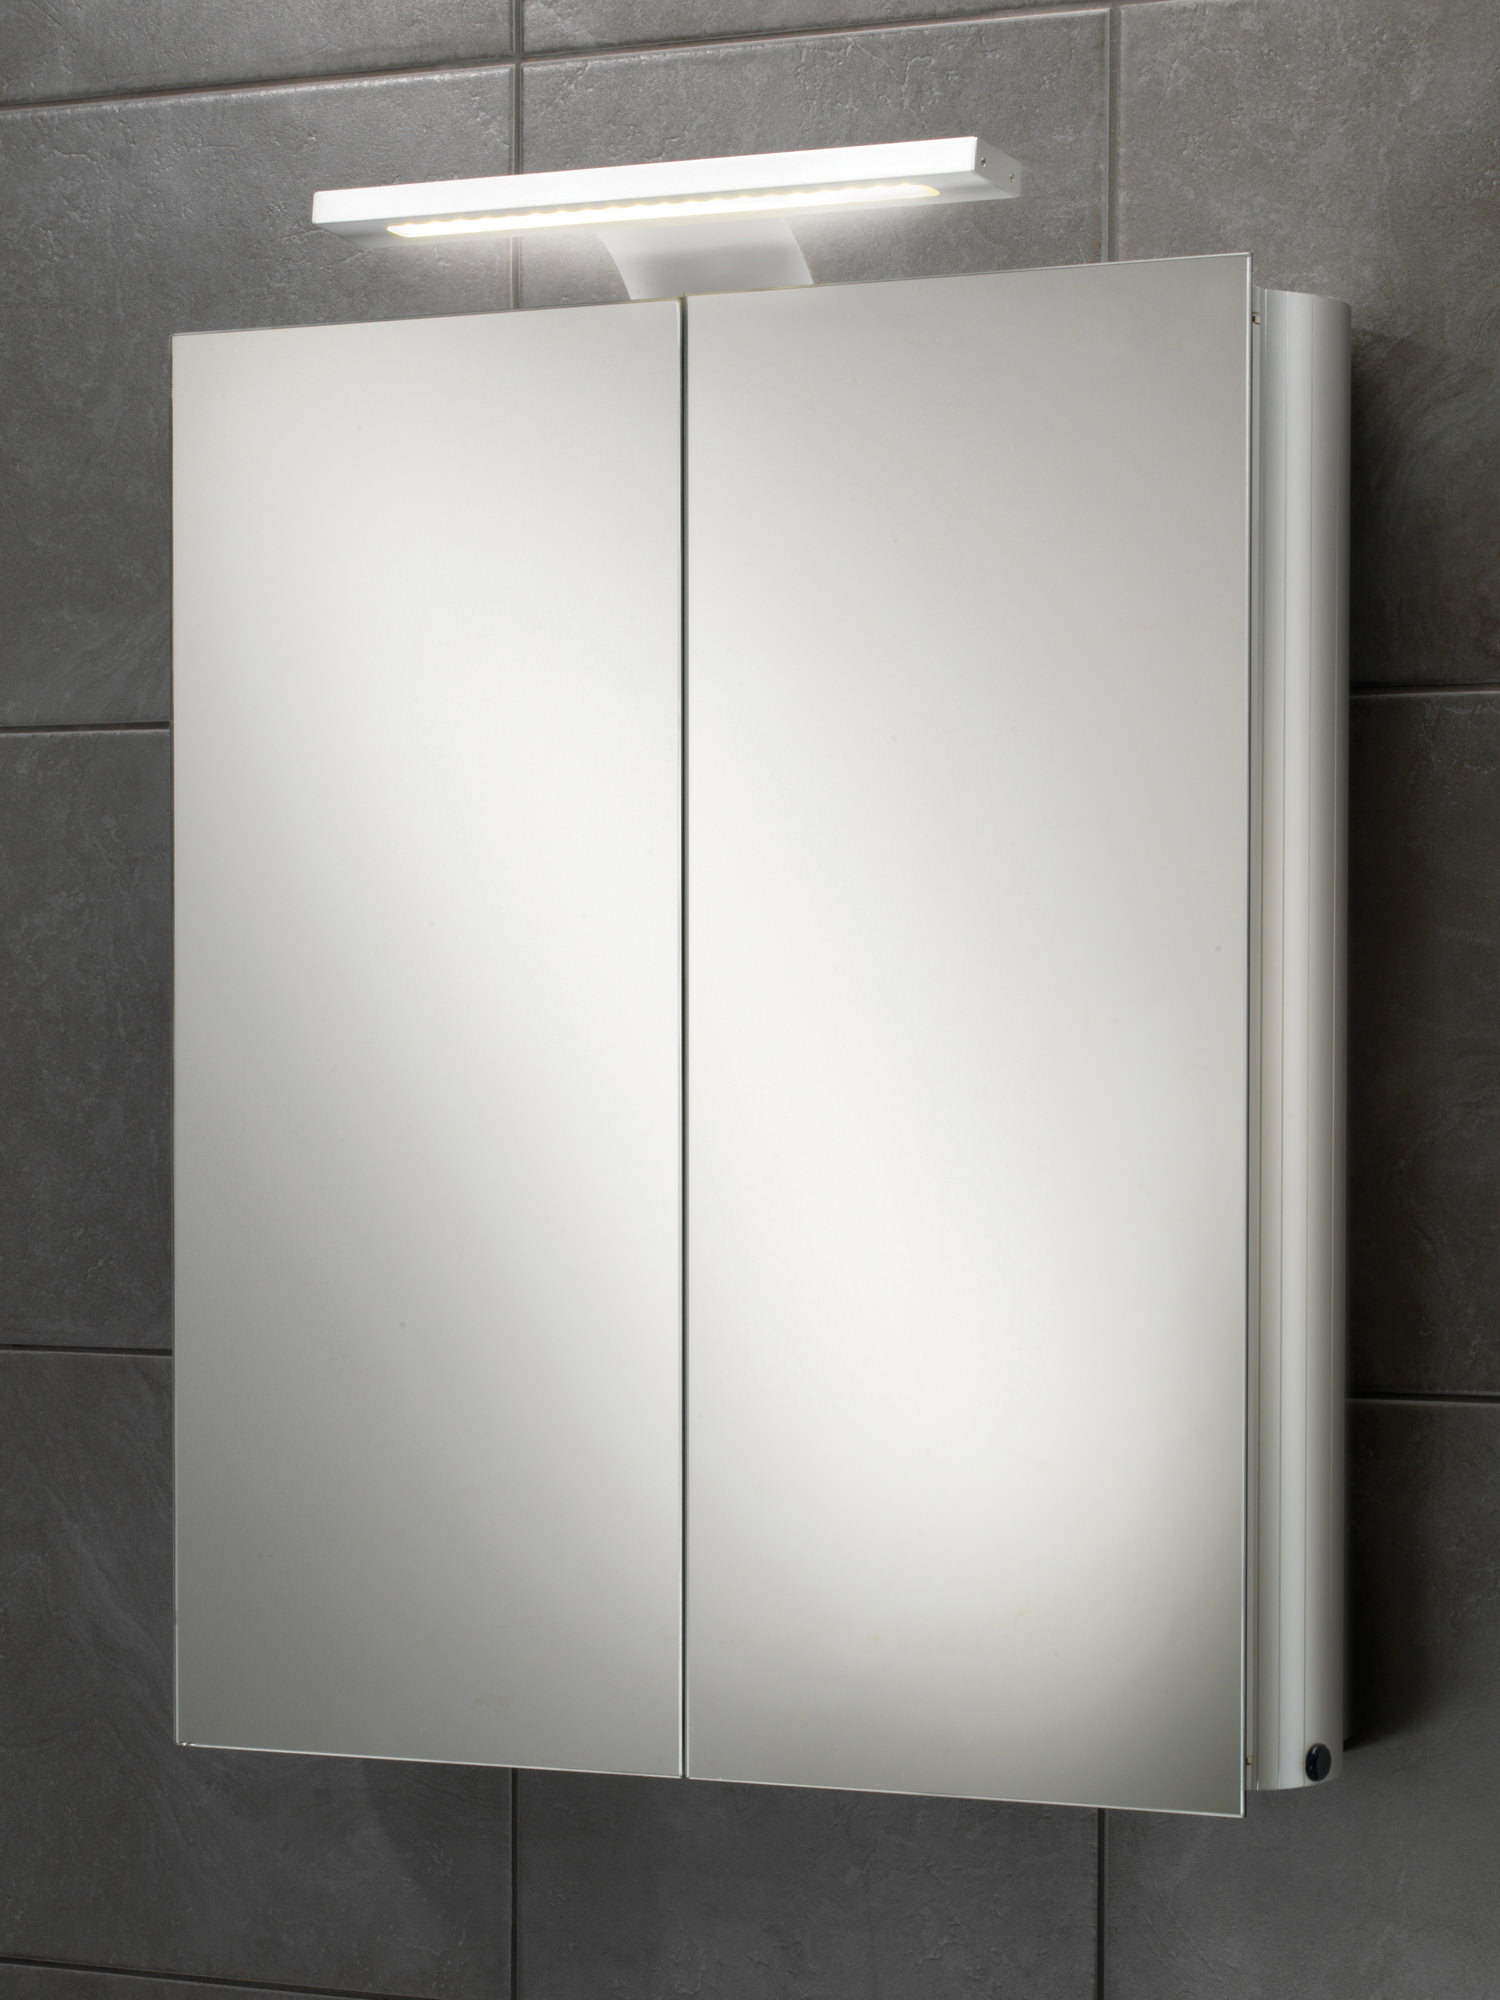 Hib atomic led illuminated double door aluminium mirrored for Bathroom cabinets led